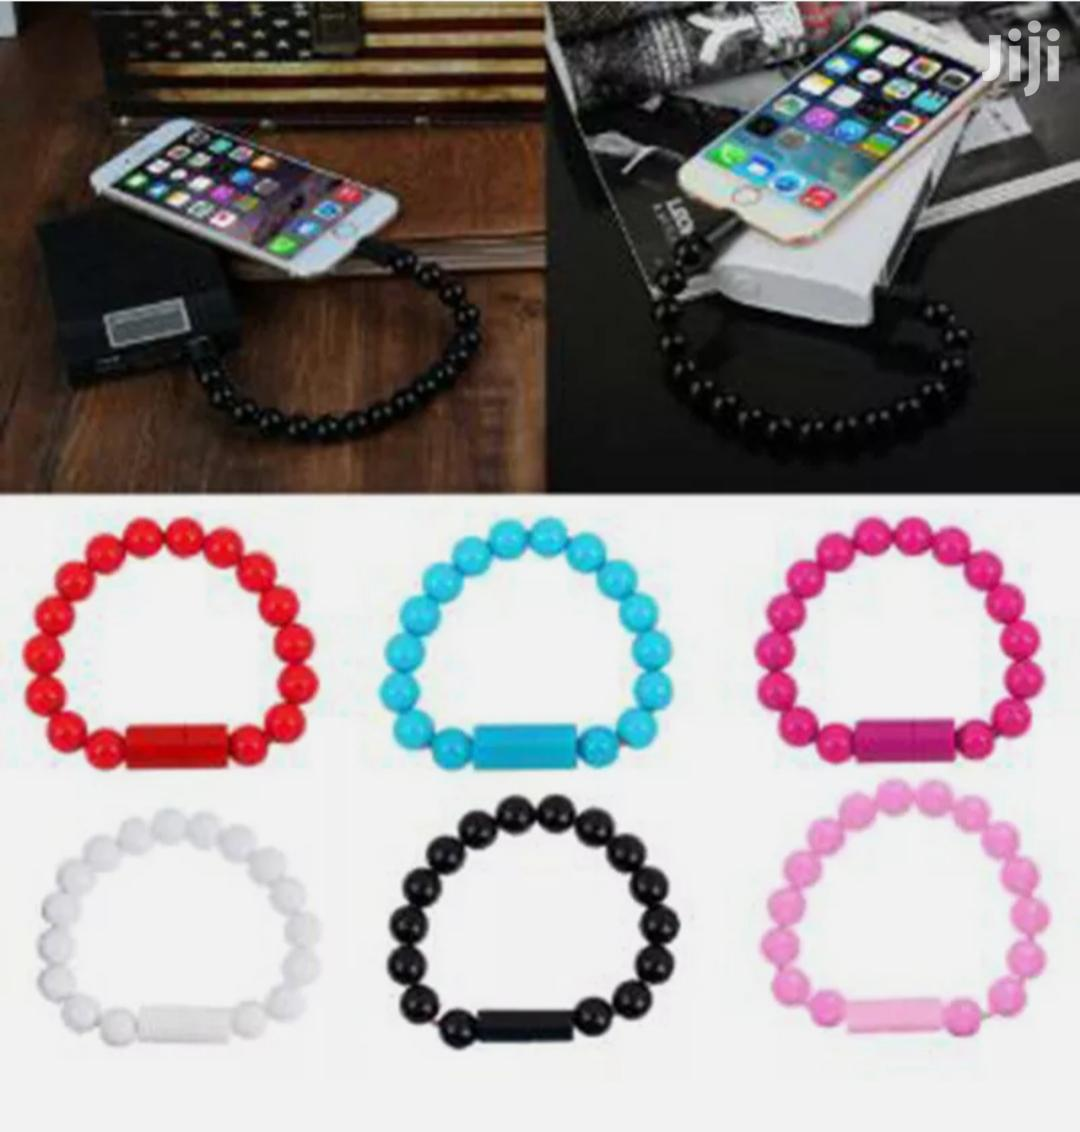 Bracelet Charging Cable | Accessories for Mobile Phones & Tablets for sale in Mvita, Mombasa, Kenya